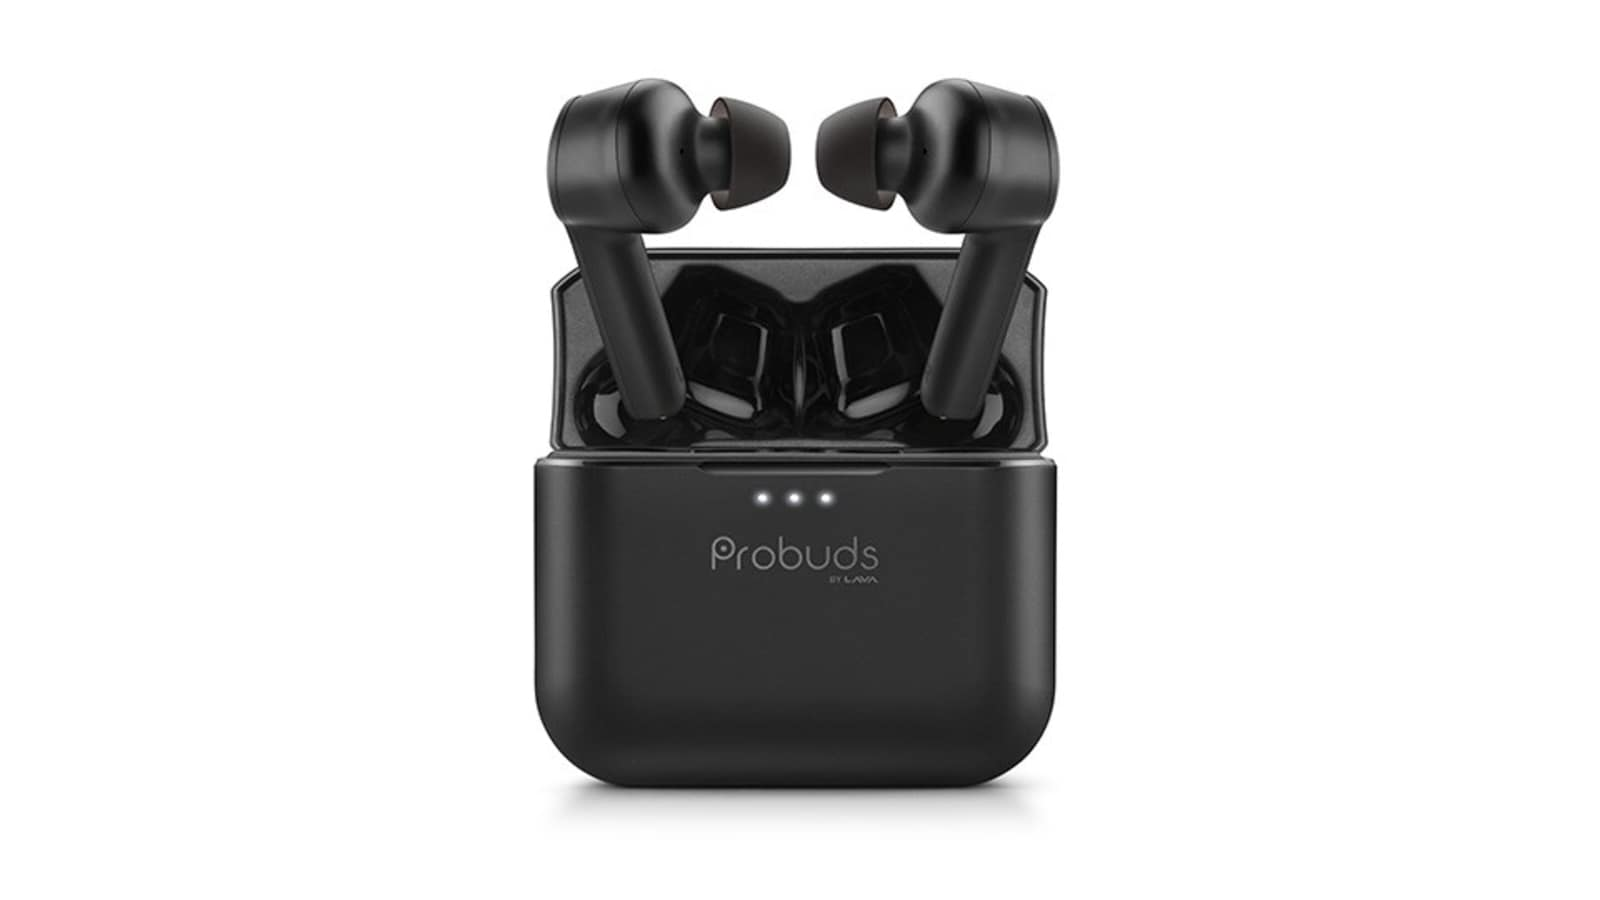 Lava Probuds Re 1 marketing offer!  The original TWS rate is 2.1 2,199 – just check your sales date